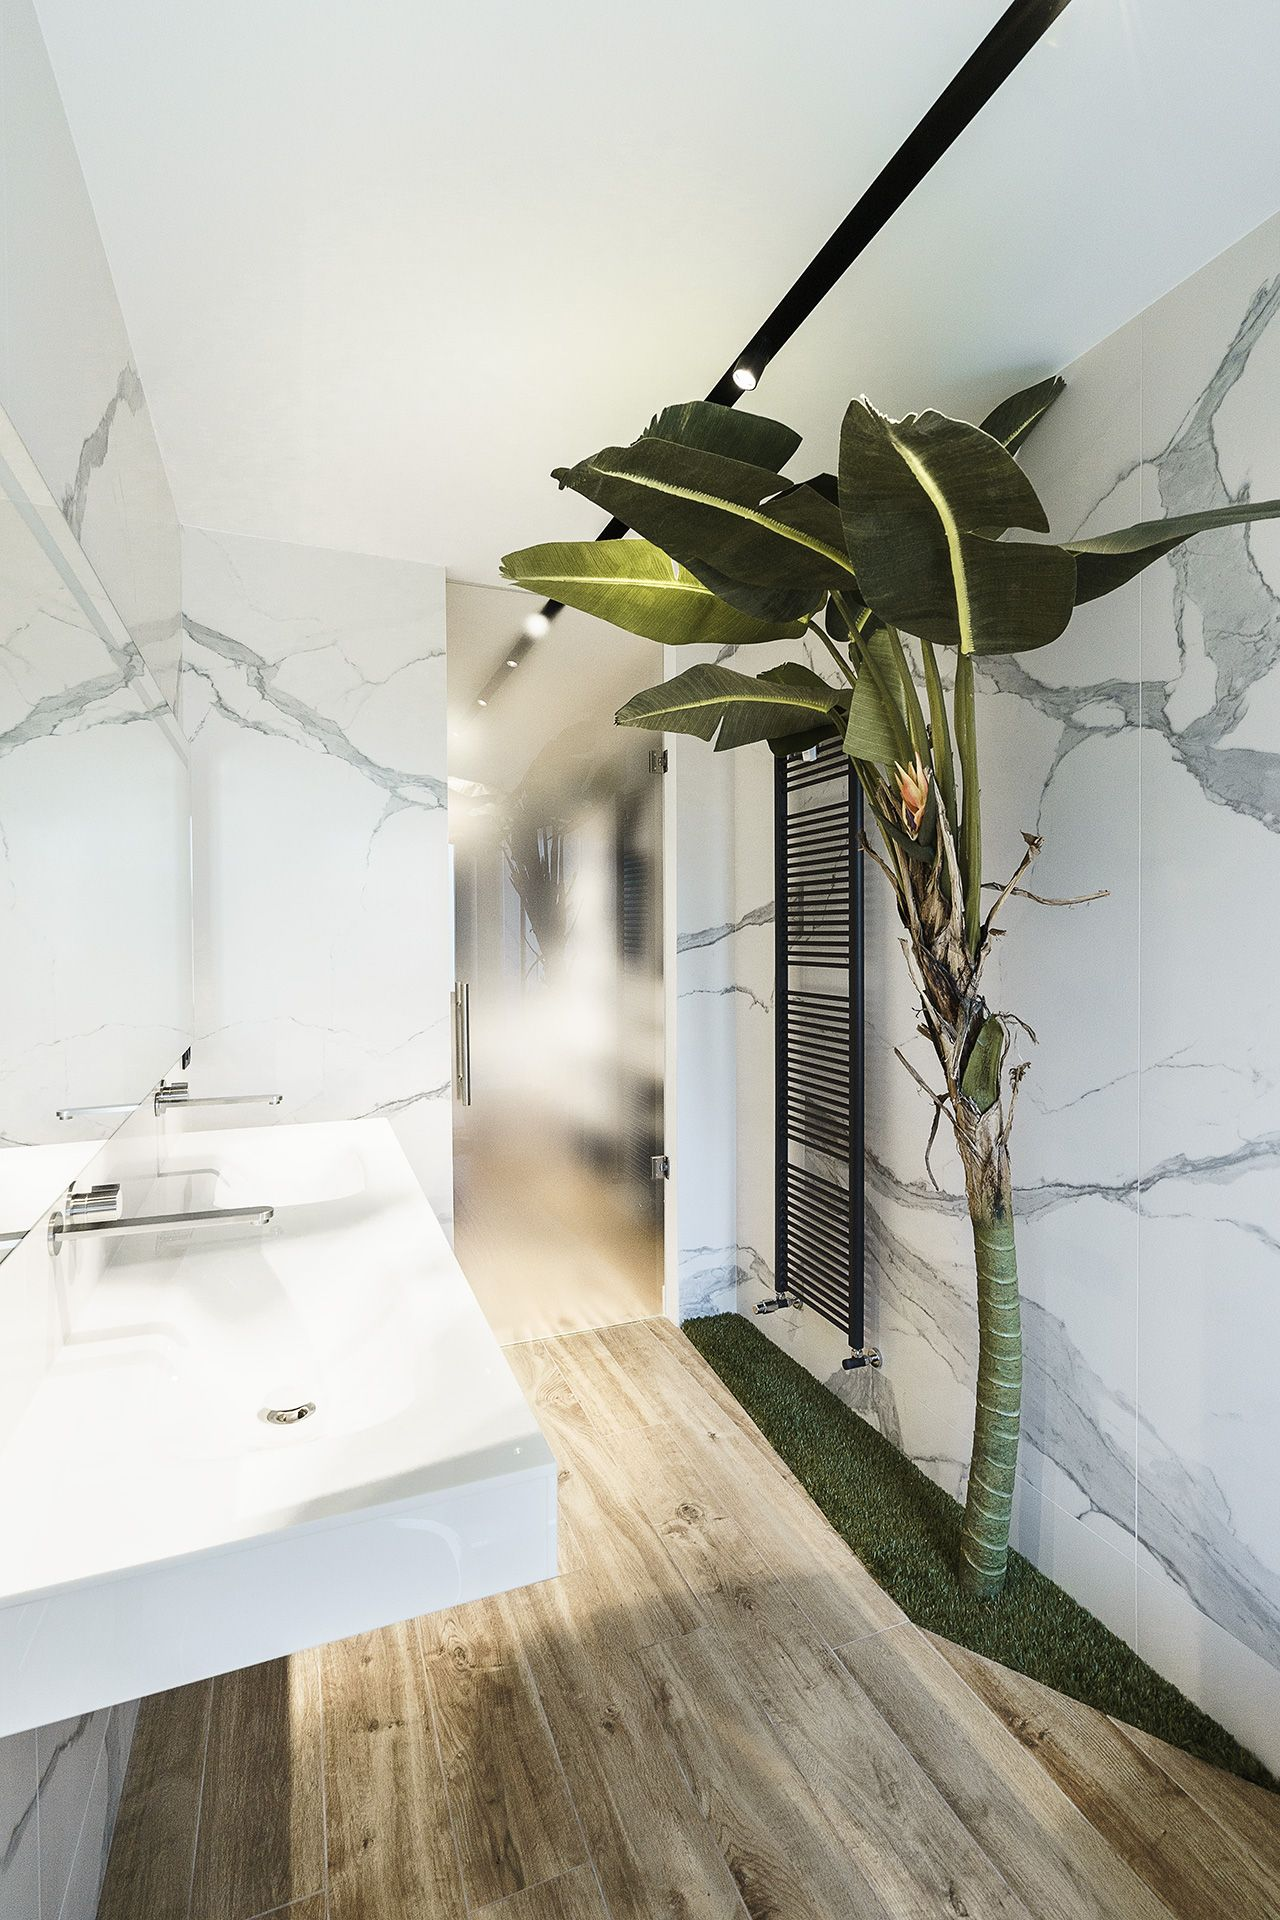 The banana tree is a whimsical addition to the bathroom.